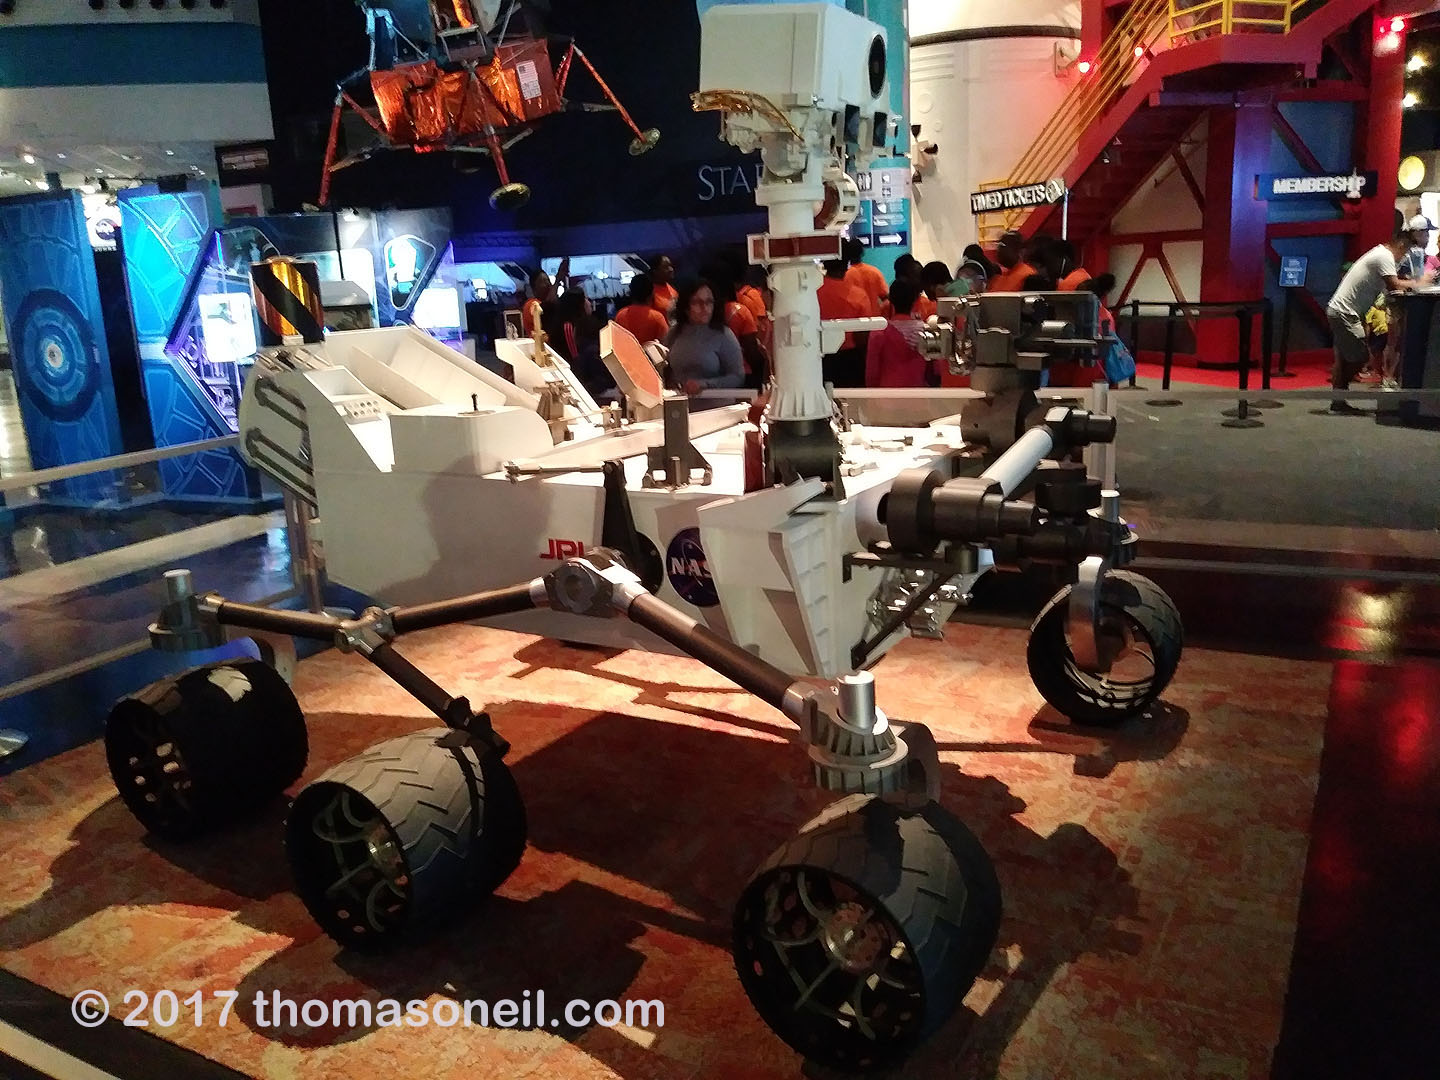 Mars Curiosity Rover, Johnson Space Center, Houston, July 2017.  Click for next photo.